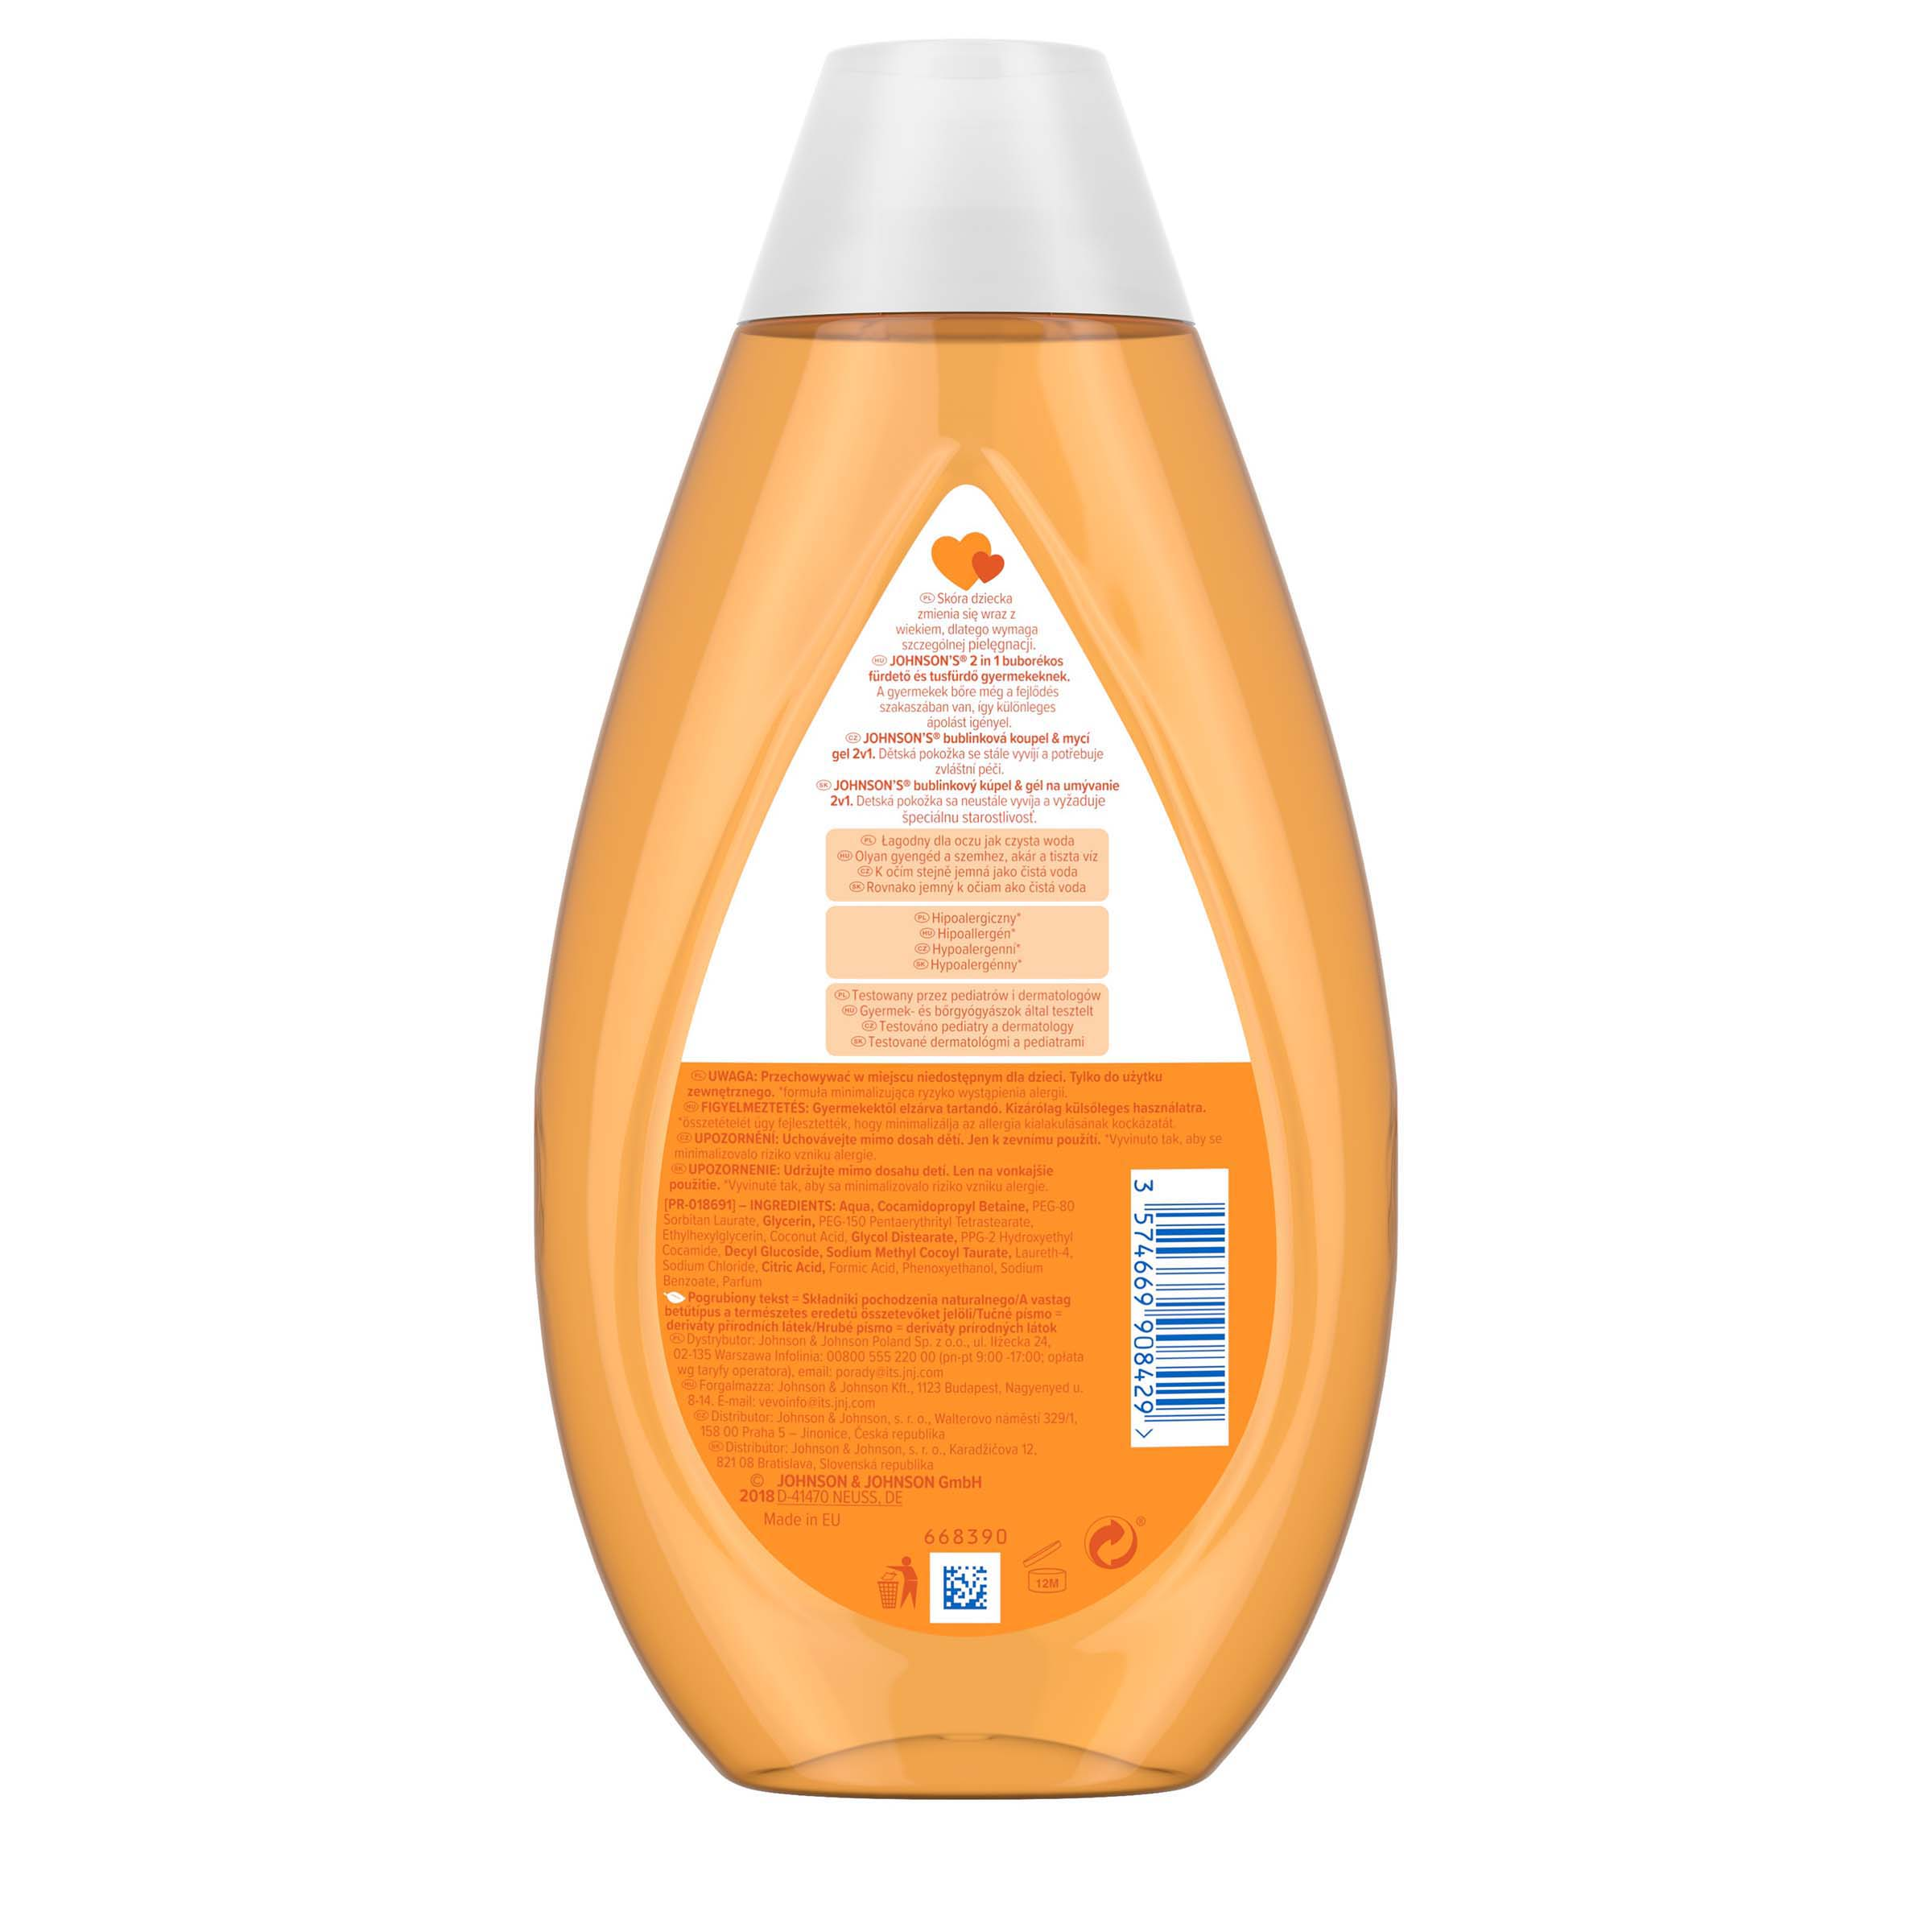 Buborekos 2in1 tusfur 500ml